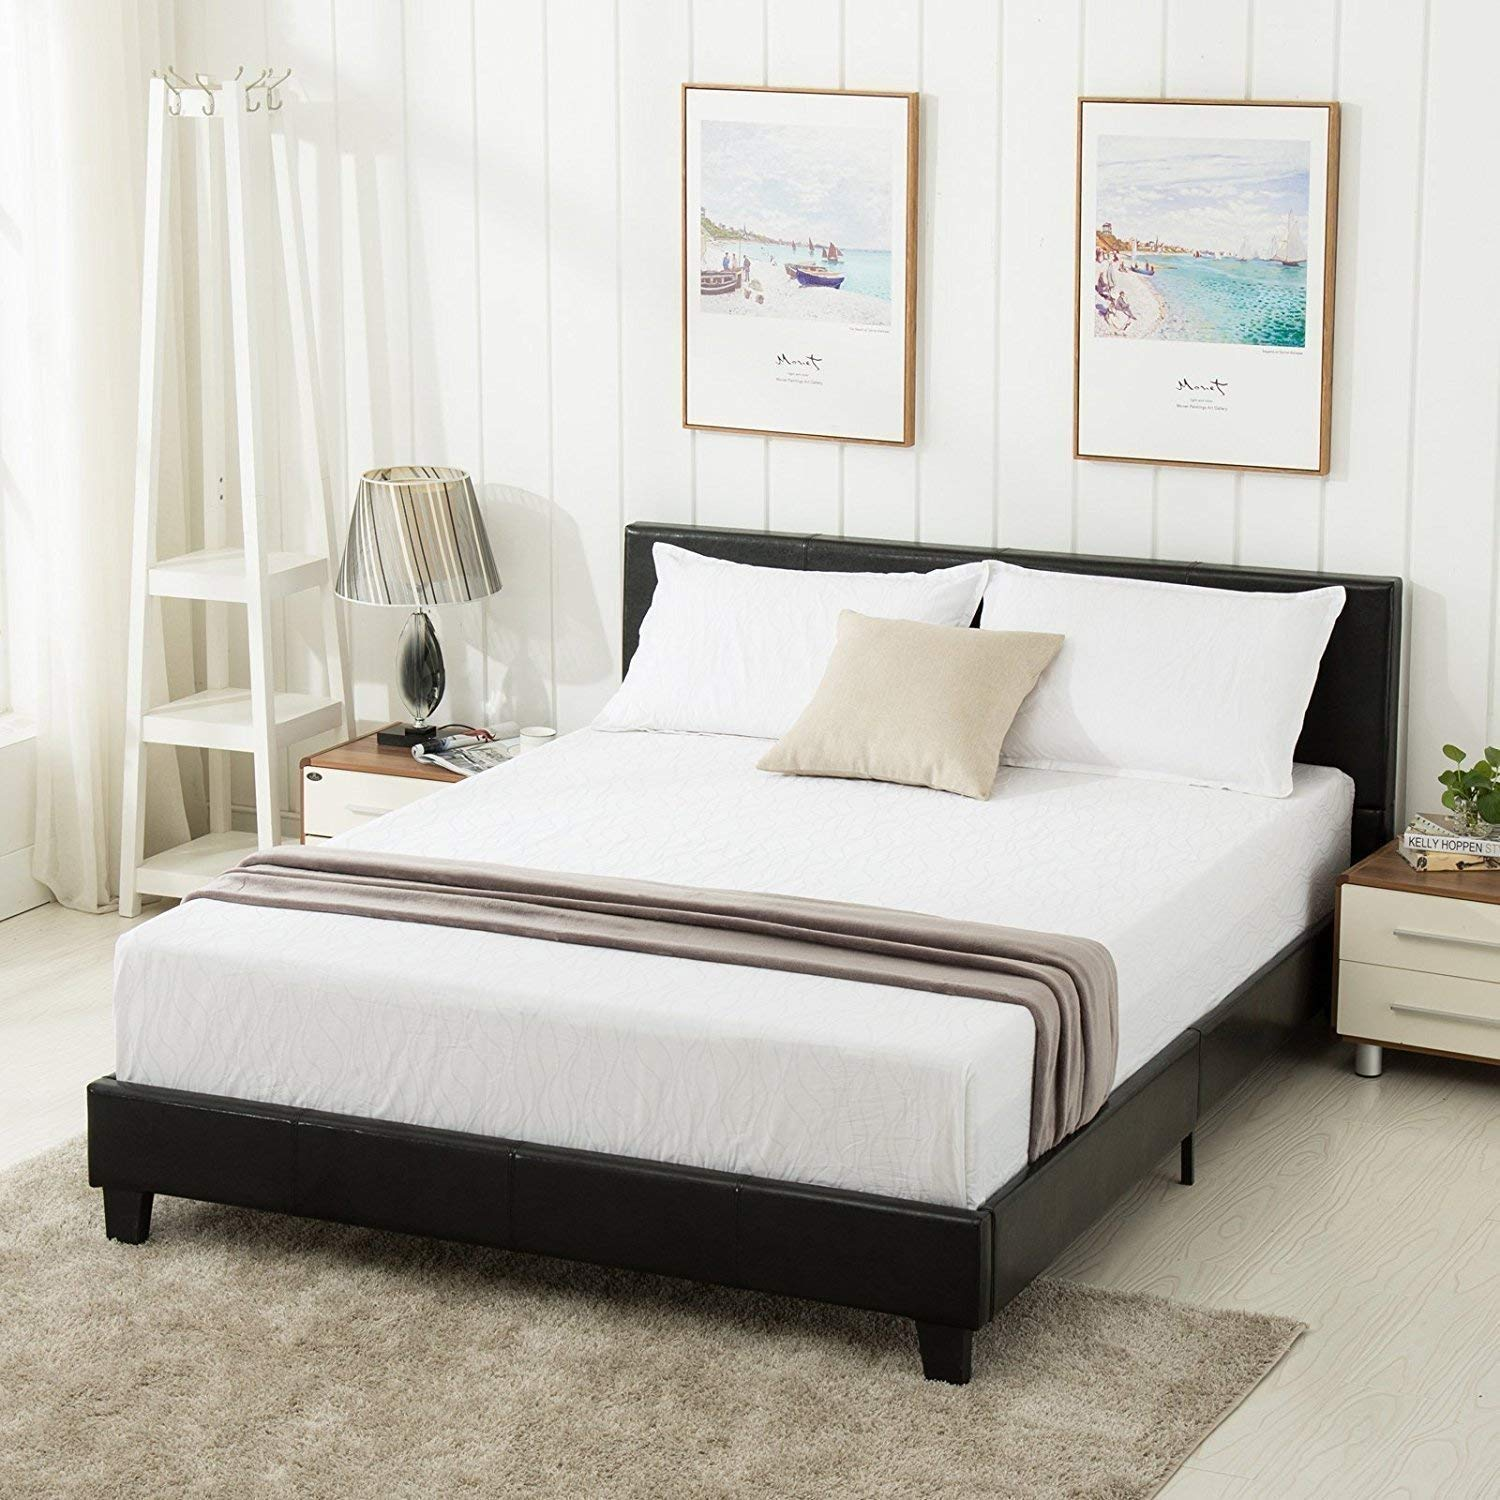 Mecor Twin Size Panel Bed-Upholstered Faux Leather Bonded Platform Bed Frame-Twin Bed Frames with Headboard, No Box Spring Needed,for Teens Adults Children,Black/Twin 4090